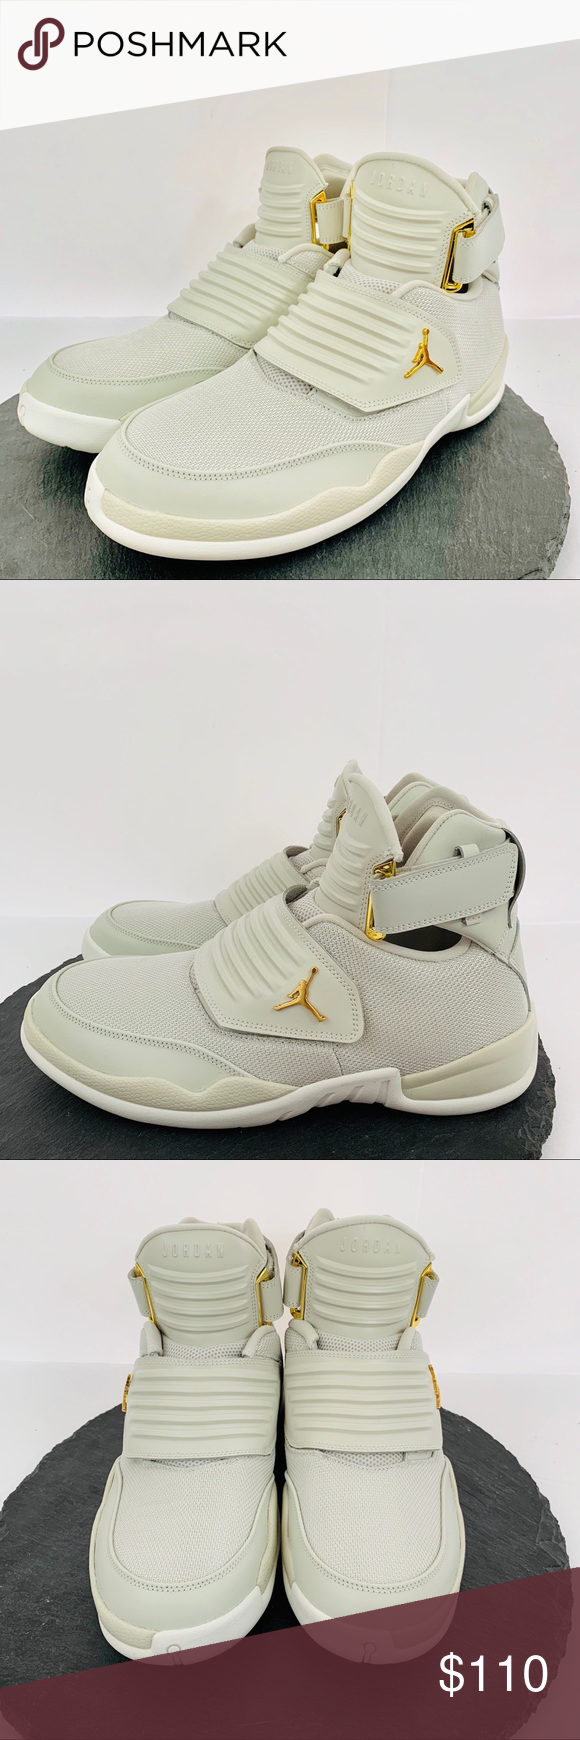 a2f4862be0 Air Jordan Generation 23 men's basketball shoes Directly purchased ...